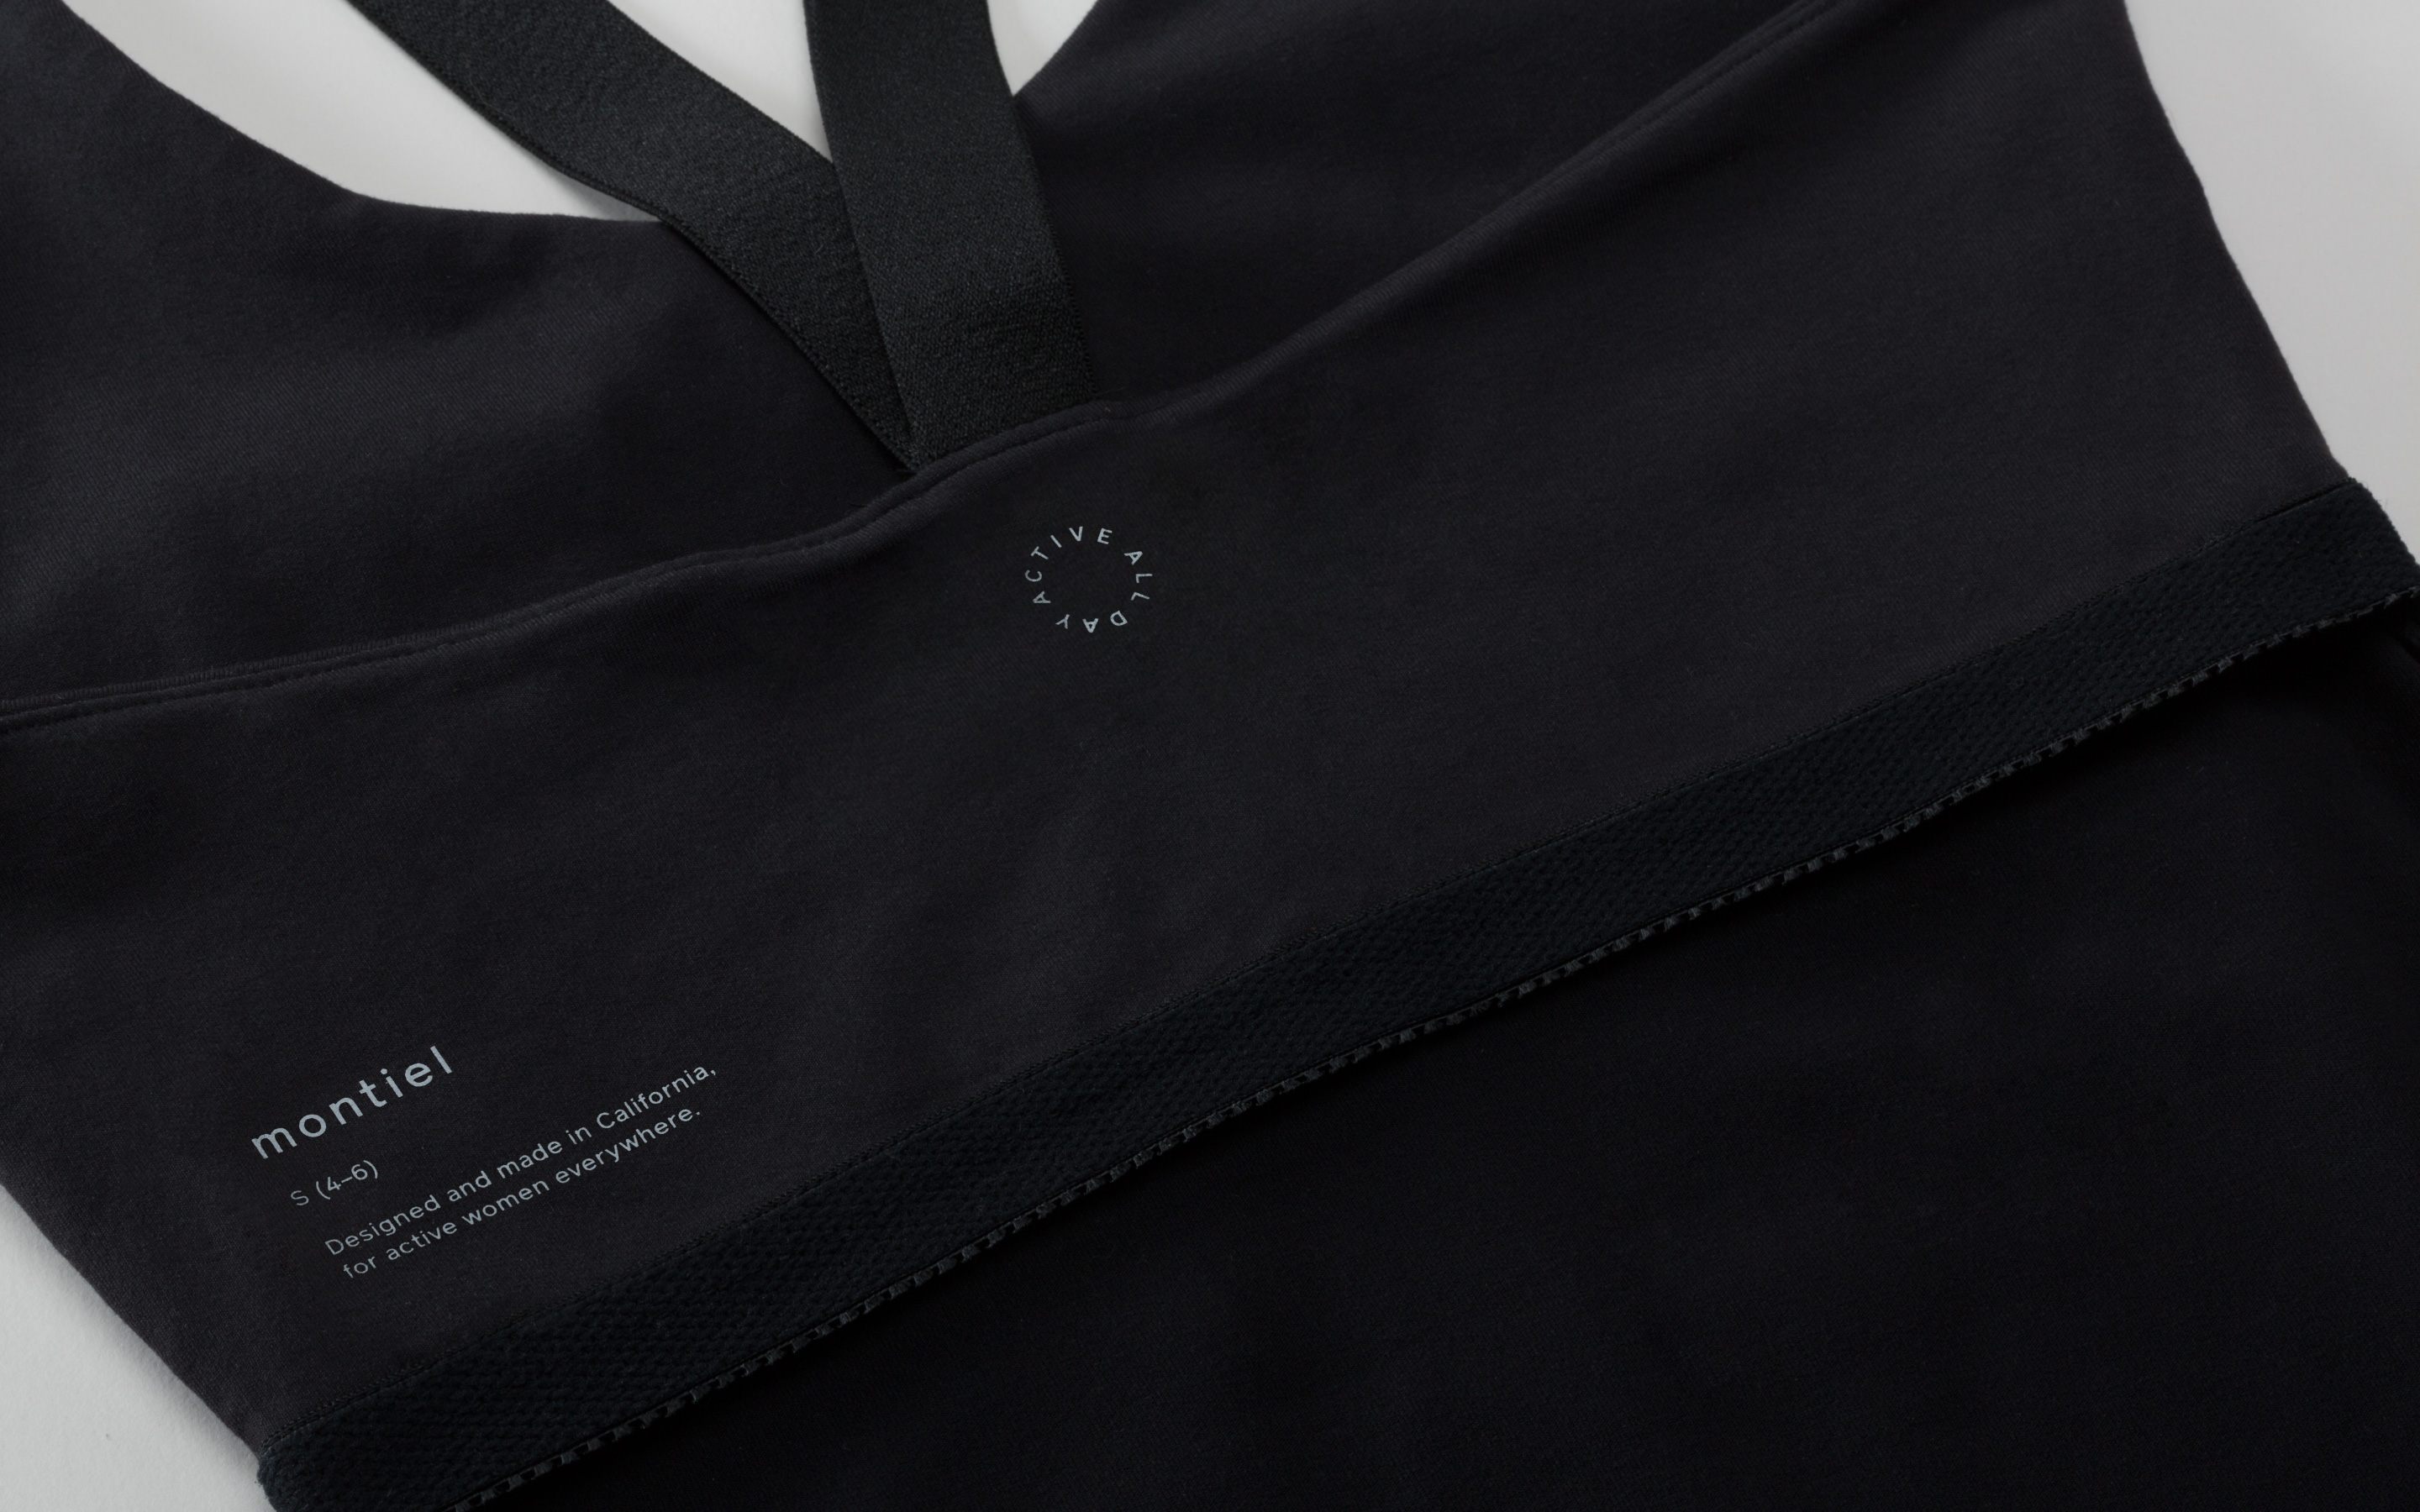 Montiel, Vedros Studio, Brand Identity, Clothing Line, Typography, Packaging